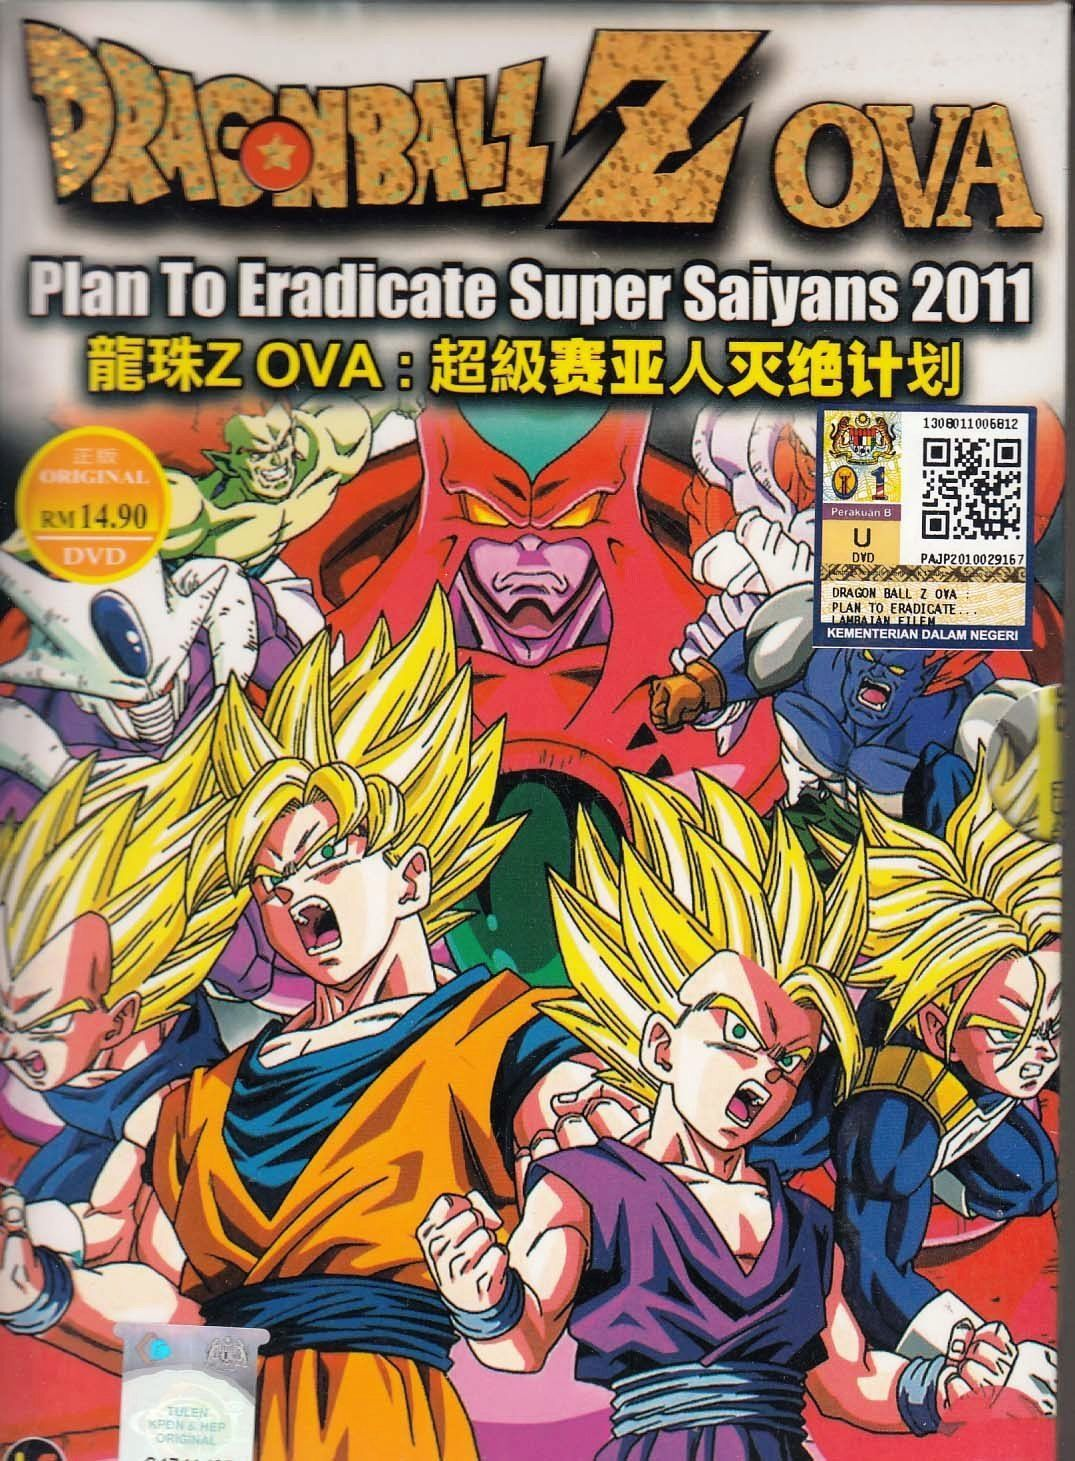 Dvd Anime Dragon Ball Z Ova Plan To Eradicate Super Saiyans 2011